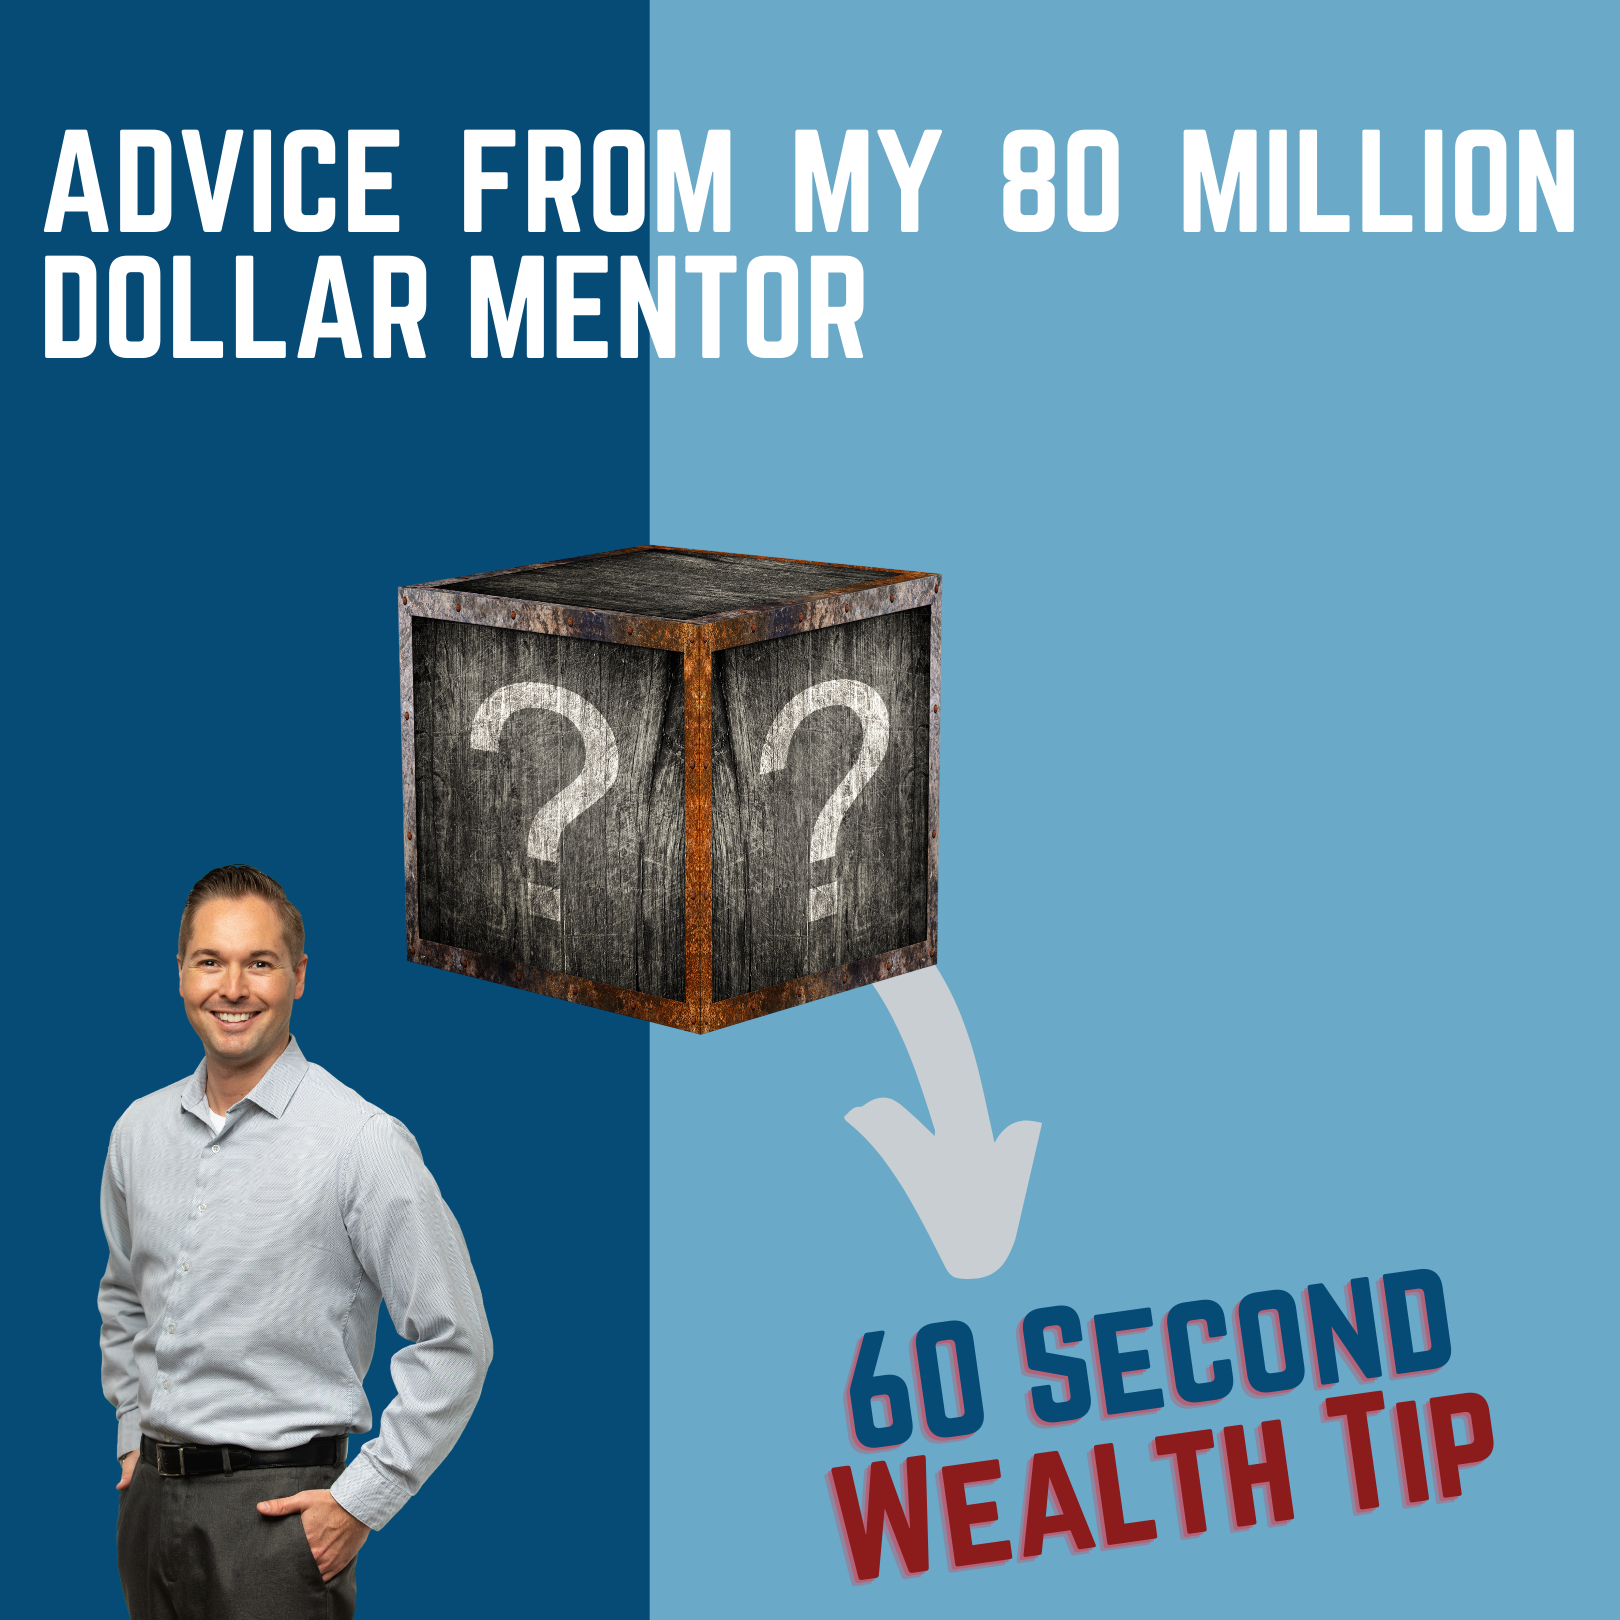 60 Second Wealth Tip – Advice From My 80 Million Dollar Mentor